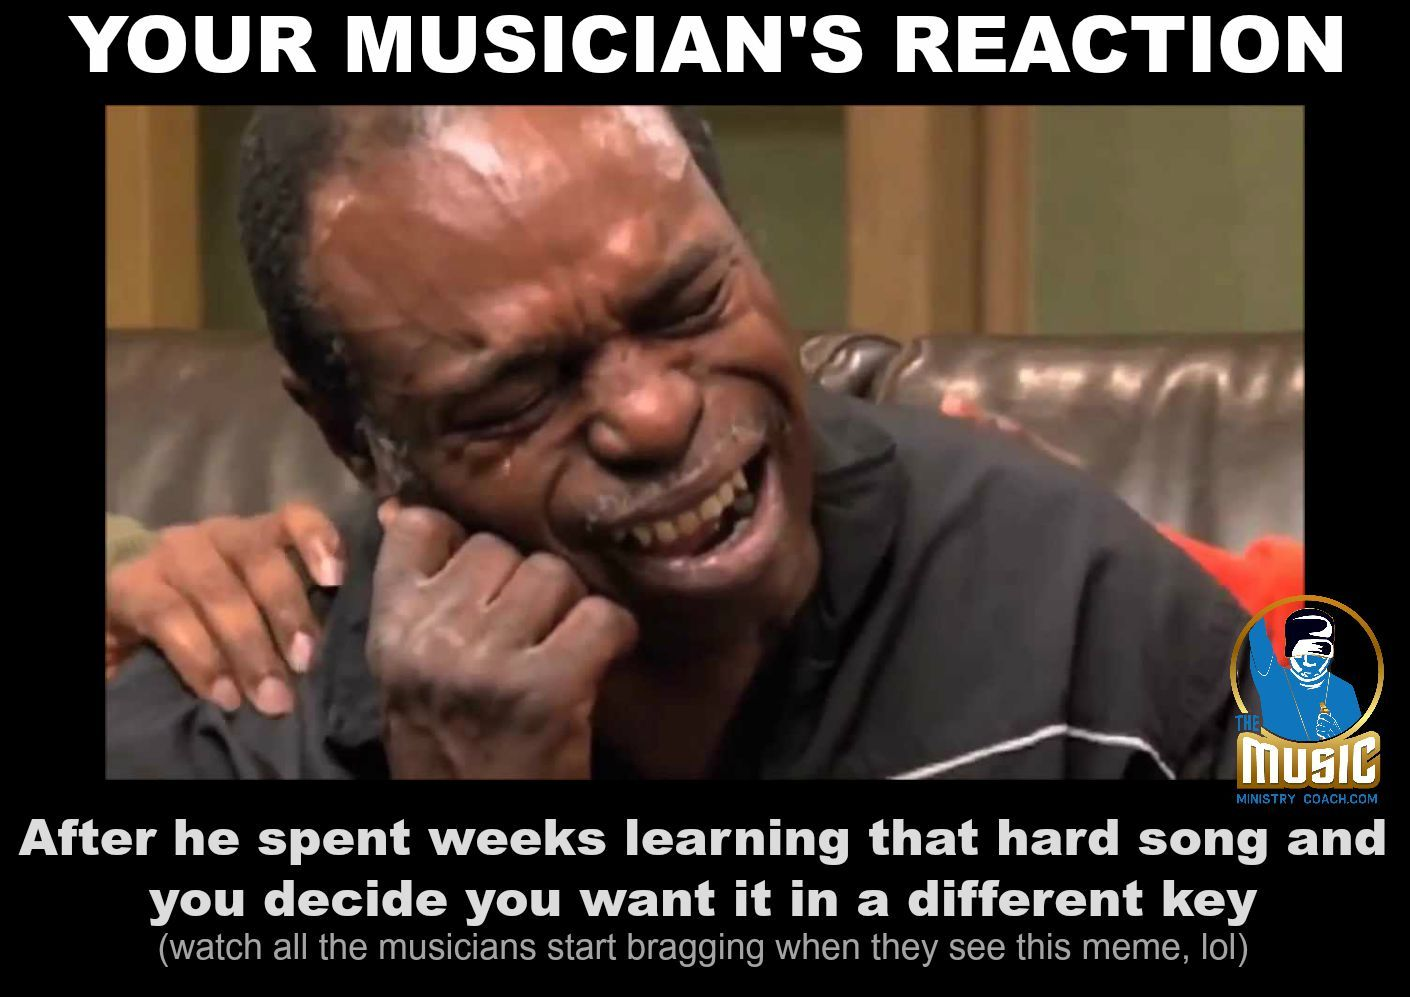 You Re Musician S Reaction After He Spent Weeks Learning That Hard Song And You Decide You Want It In A Different Musician Humor Musician Memes Christian Jokes